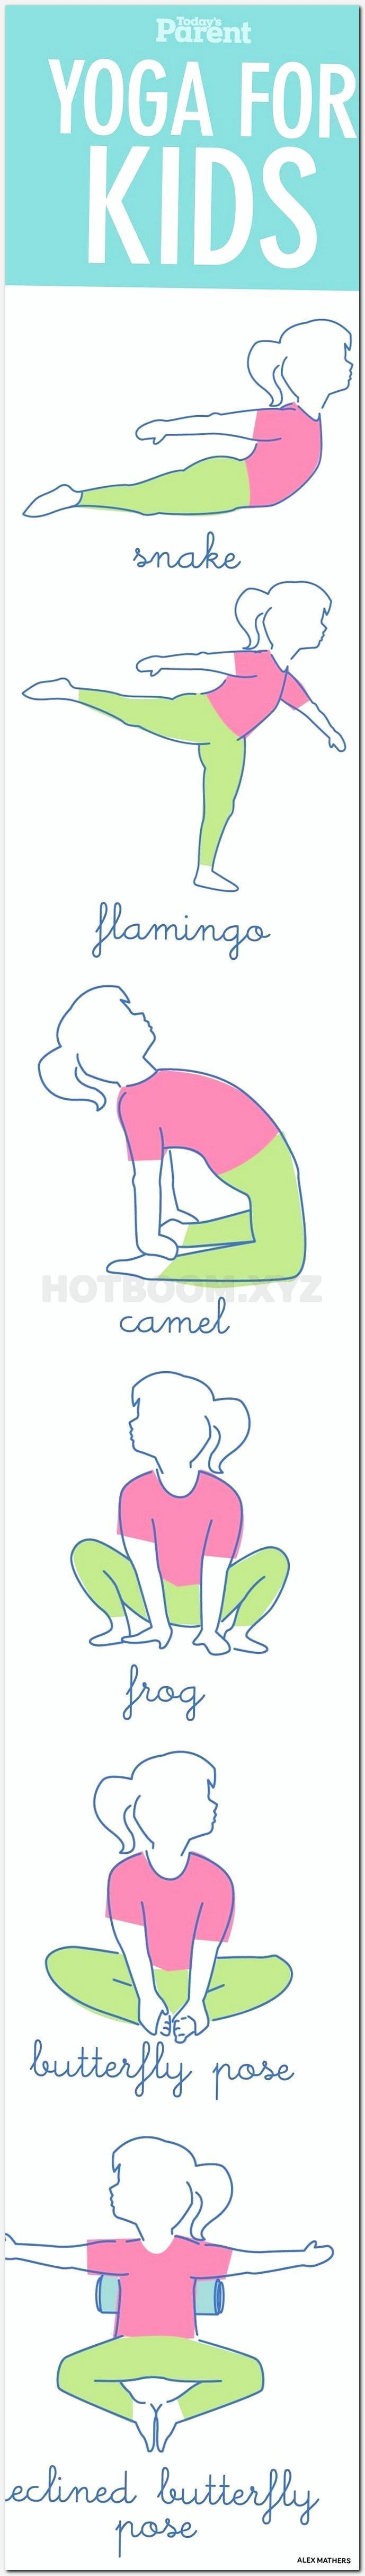 hatha and ashtanga yoga, fast weight loss hypnosis, ramdev baba diet chart for weight loss, blue green algae spirulina benefits, is yoga helpful, weight loss wellness, yoga for back pain during pregnancy, simple diet plan for weight loss, lower stomach fa